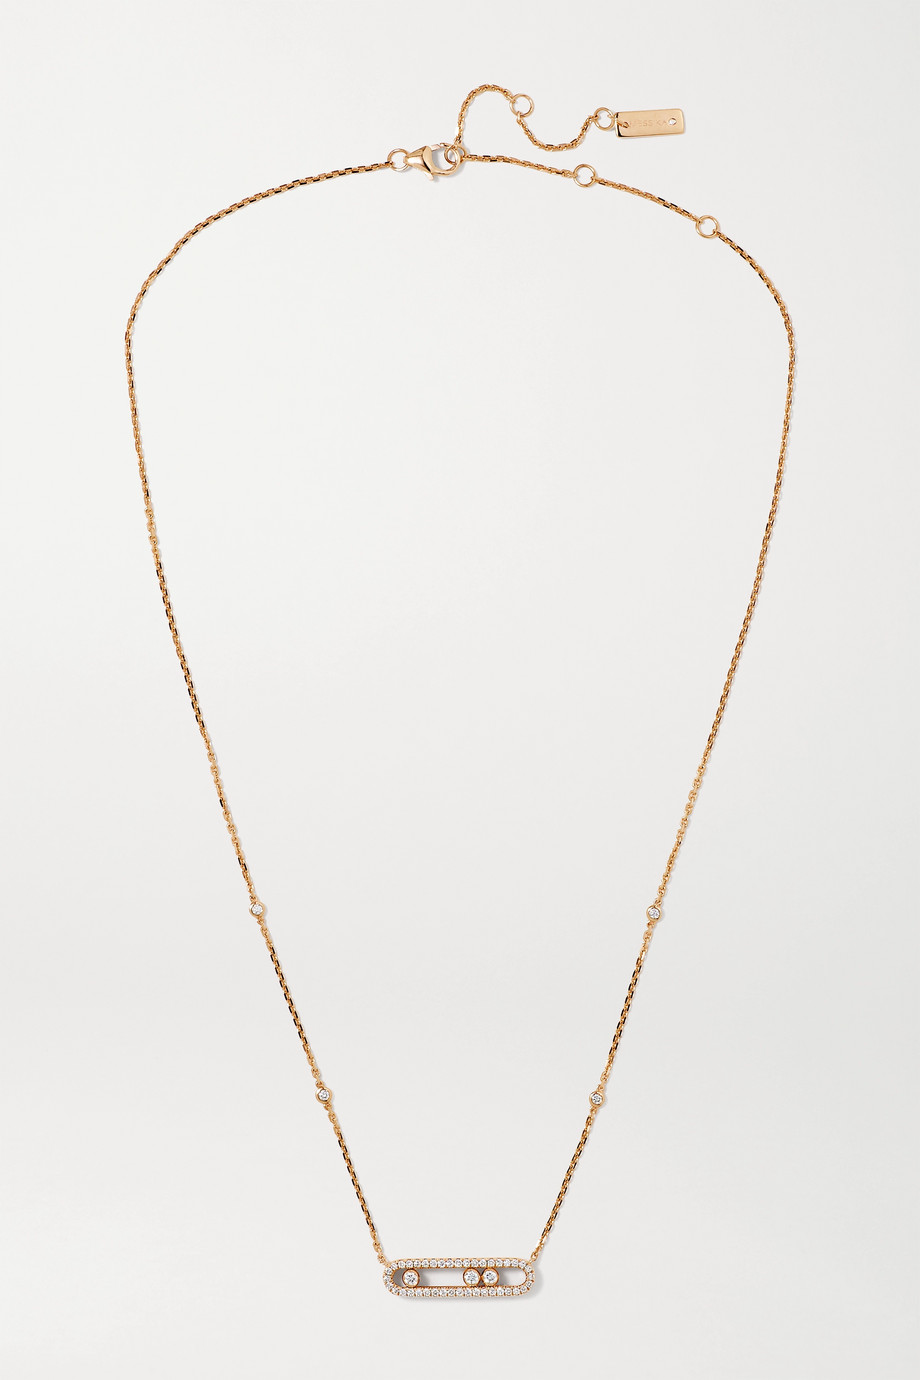 MESSIKA Baby Move 18-karat rose gold diamond necklace